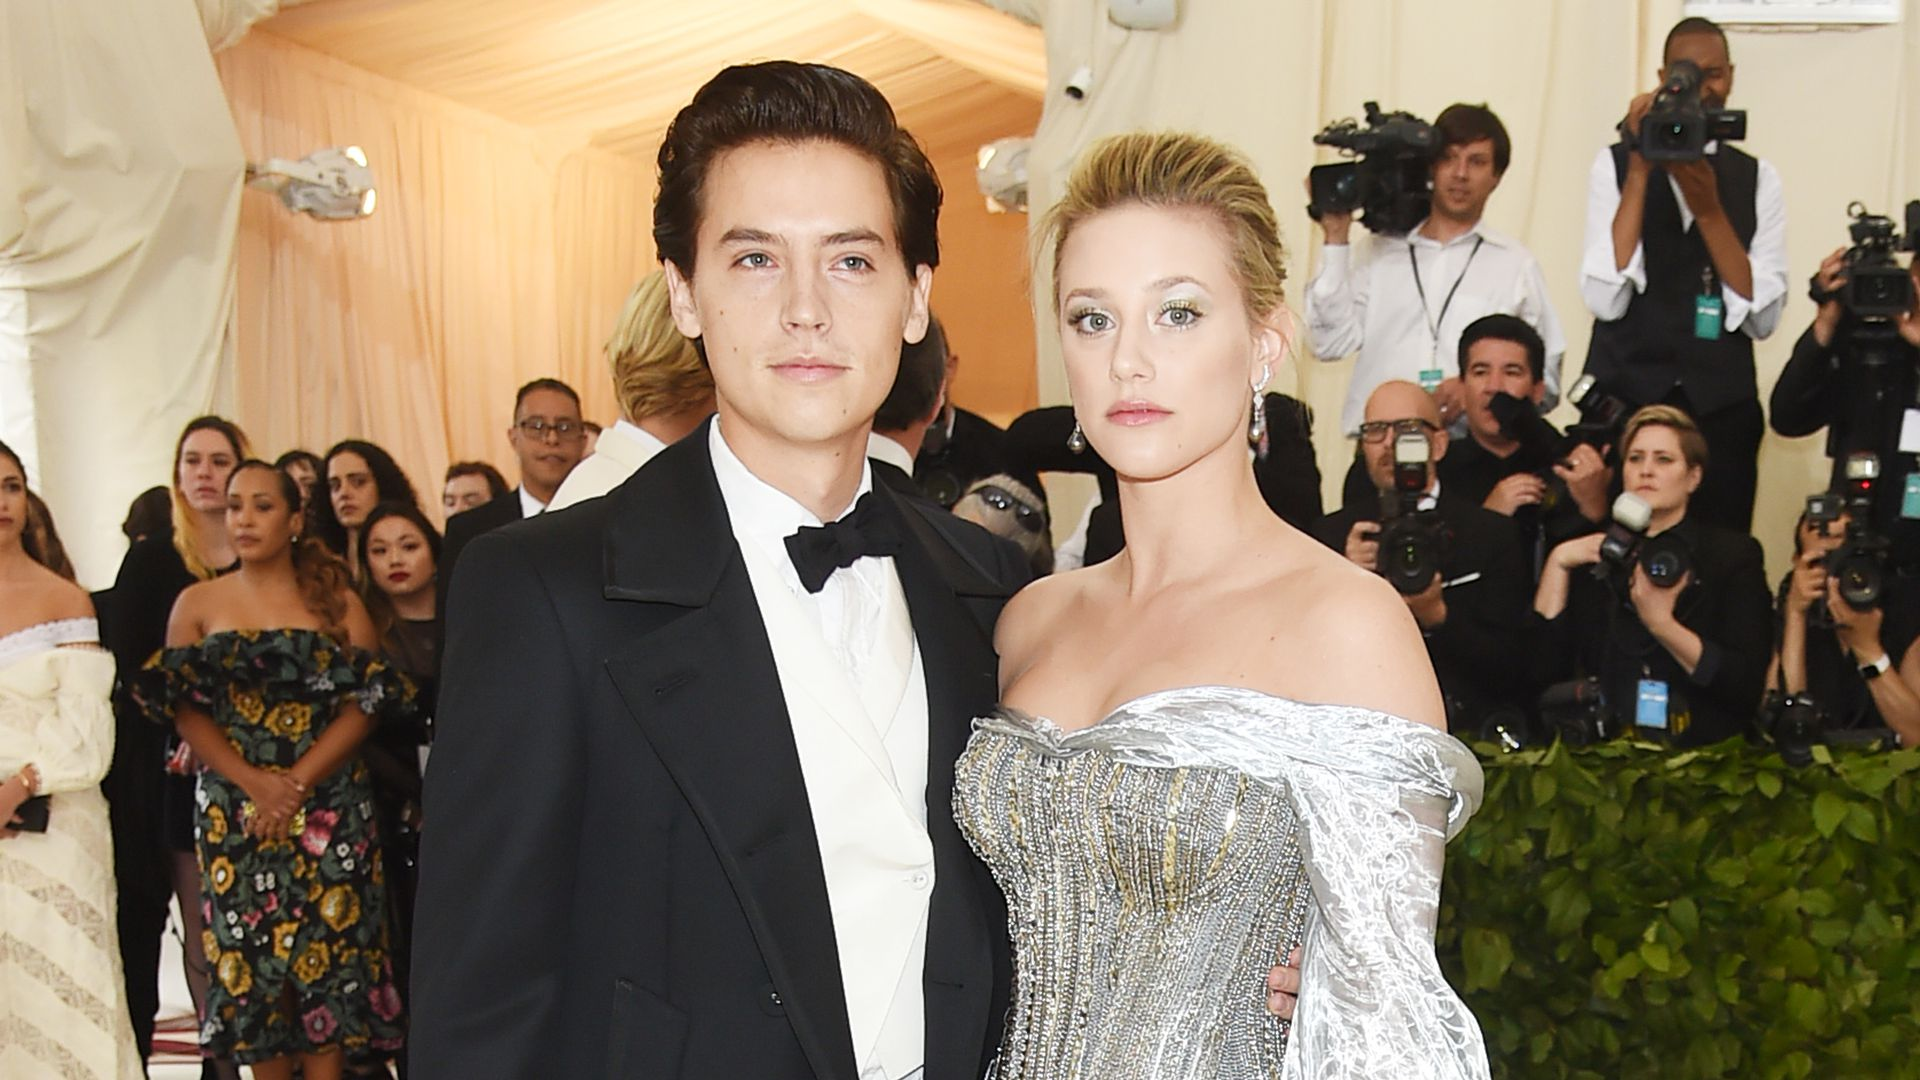 -Riverdale-Cole-Sprouse-spricht-ber-Beziehung-mit-Lili